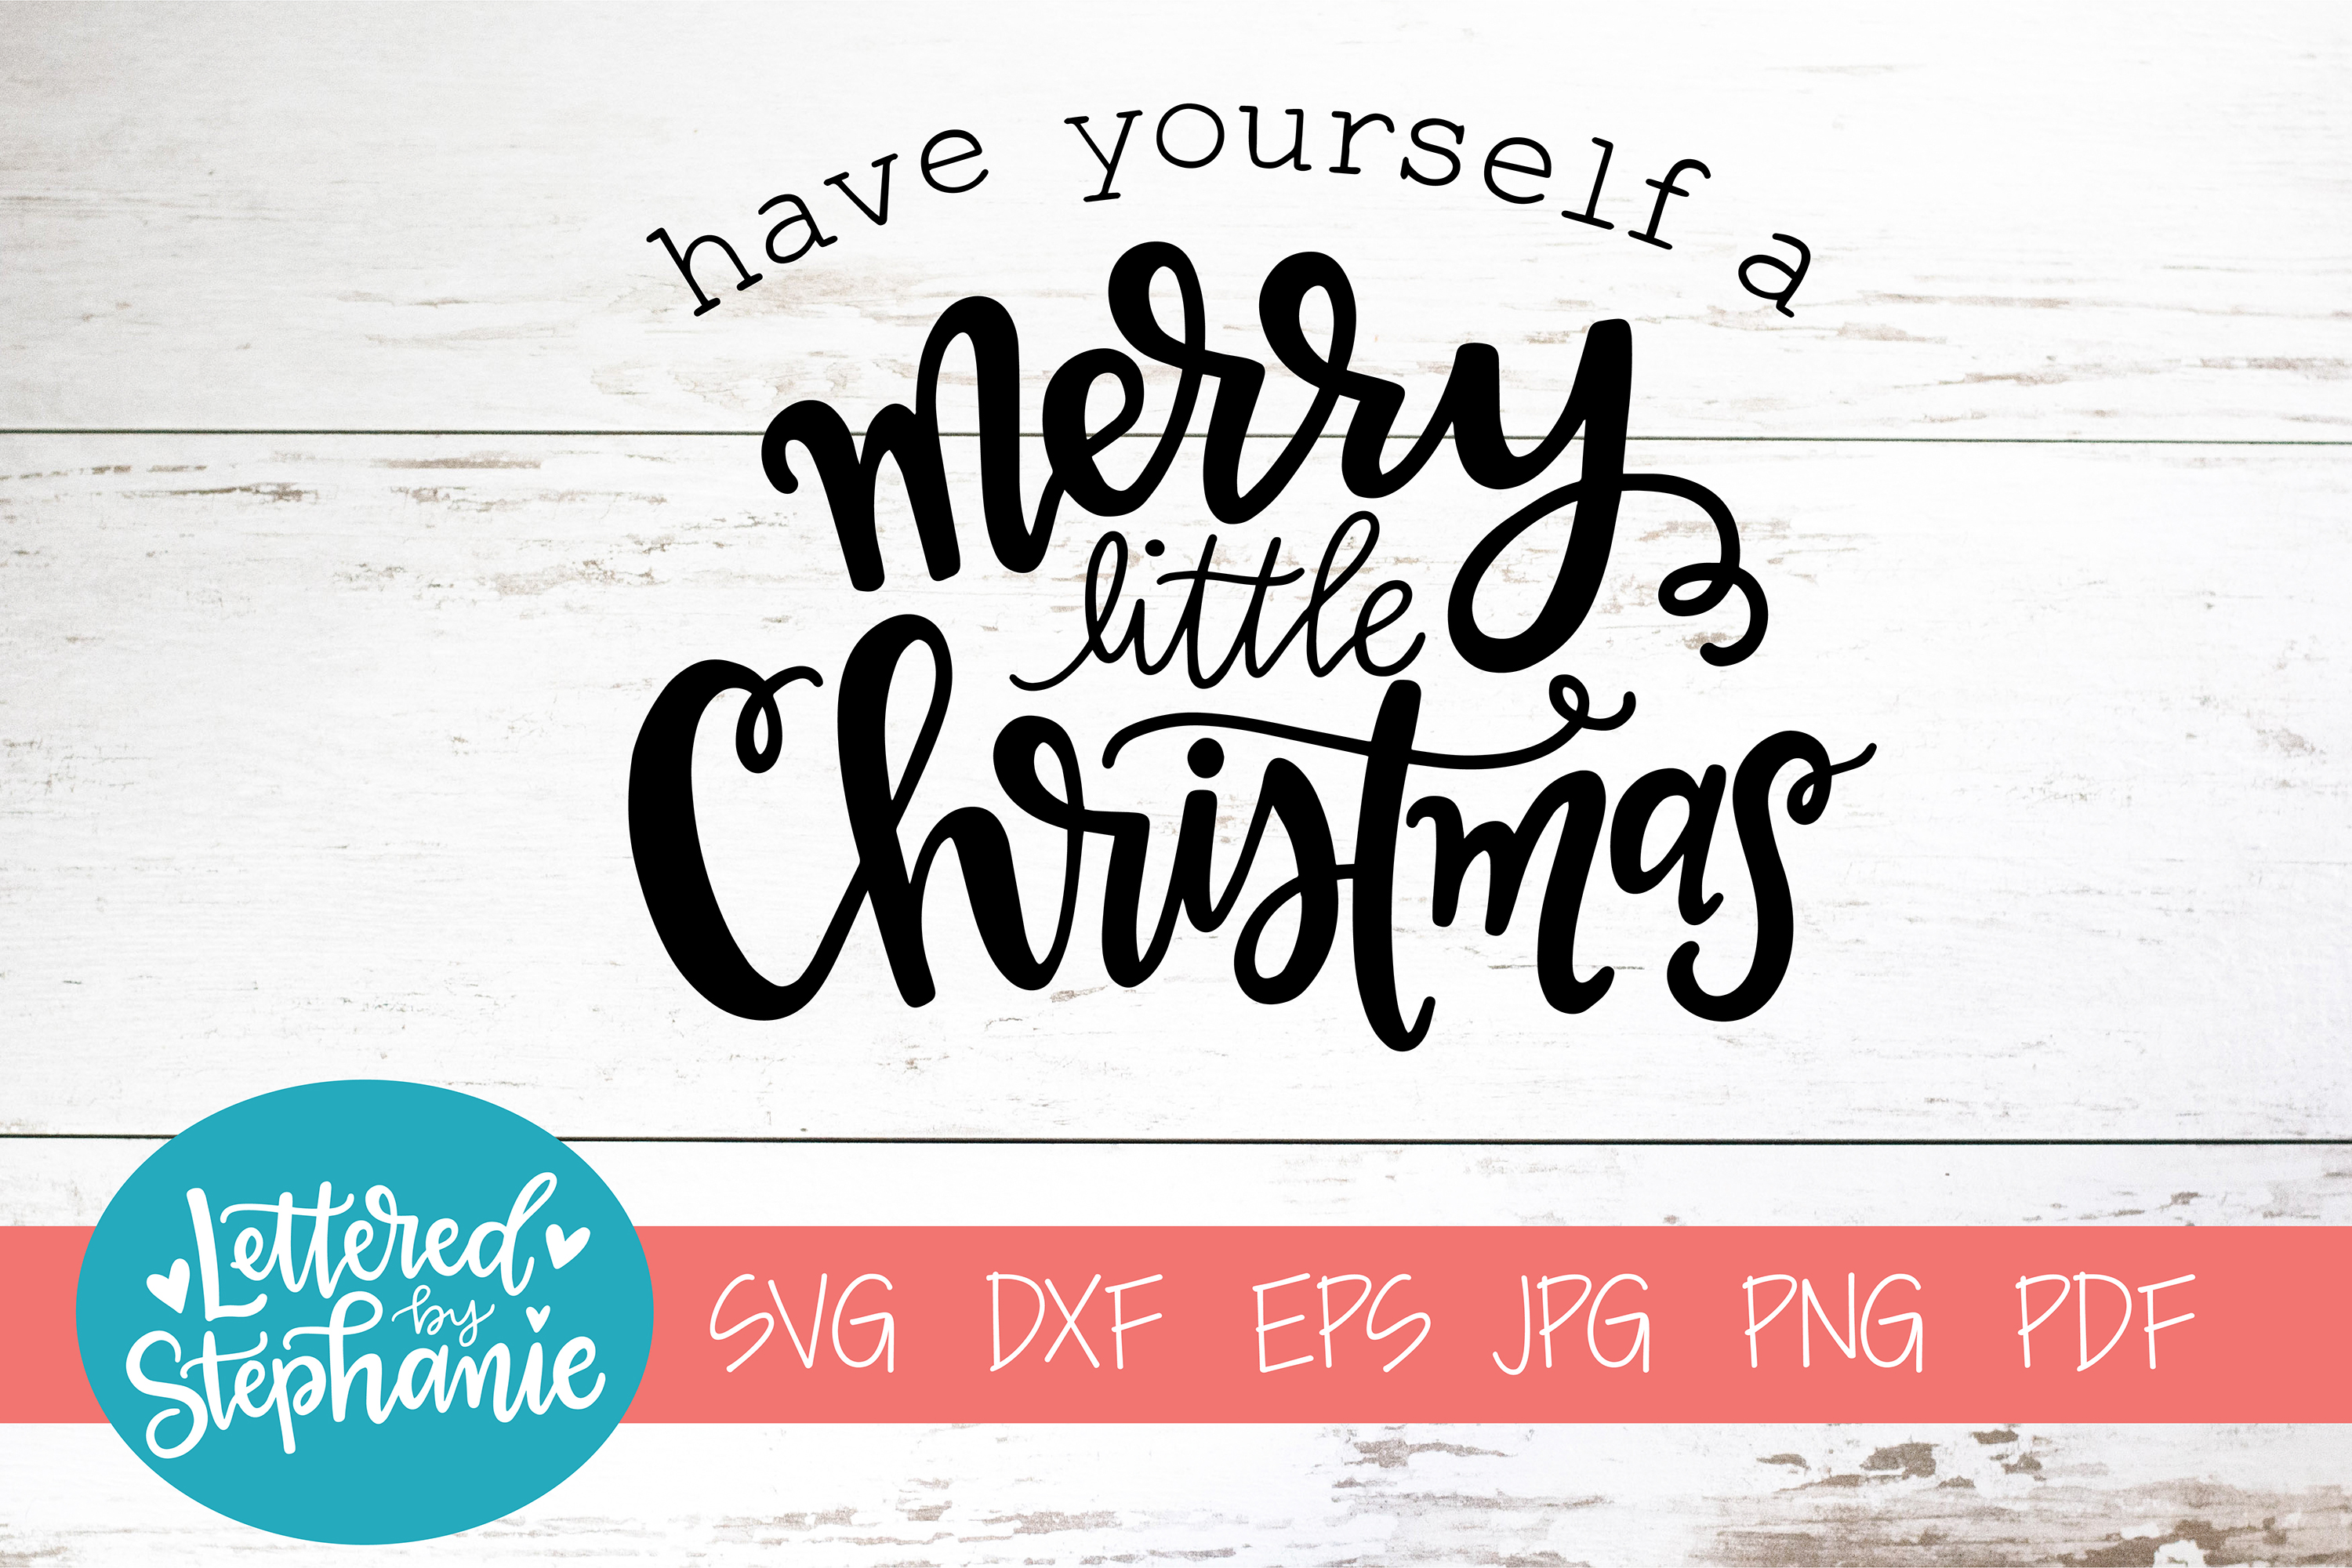 Have Yourself A Merry Little Christmas Svg.Handlettered Svg Dxf Have Yourself A Merry Little Christmas